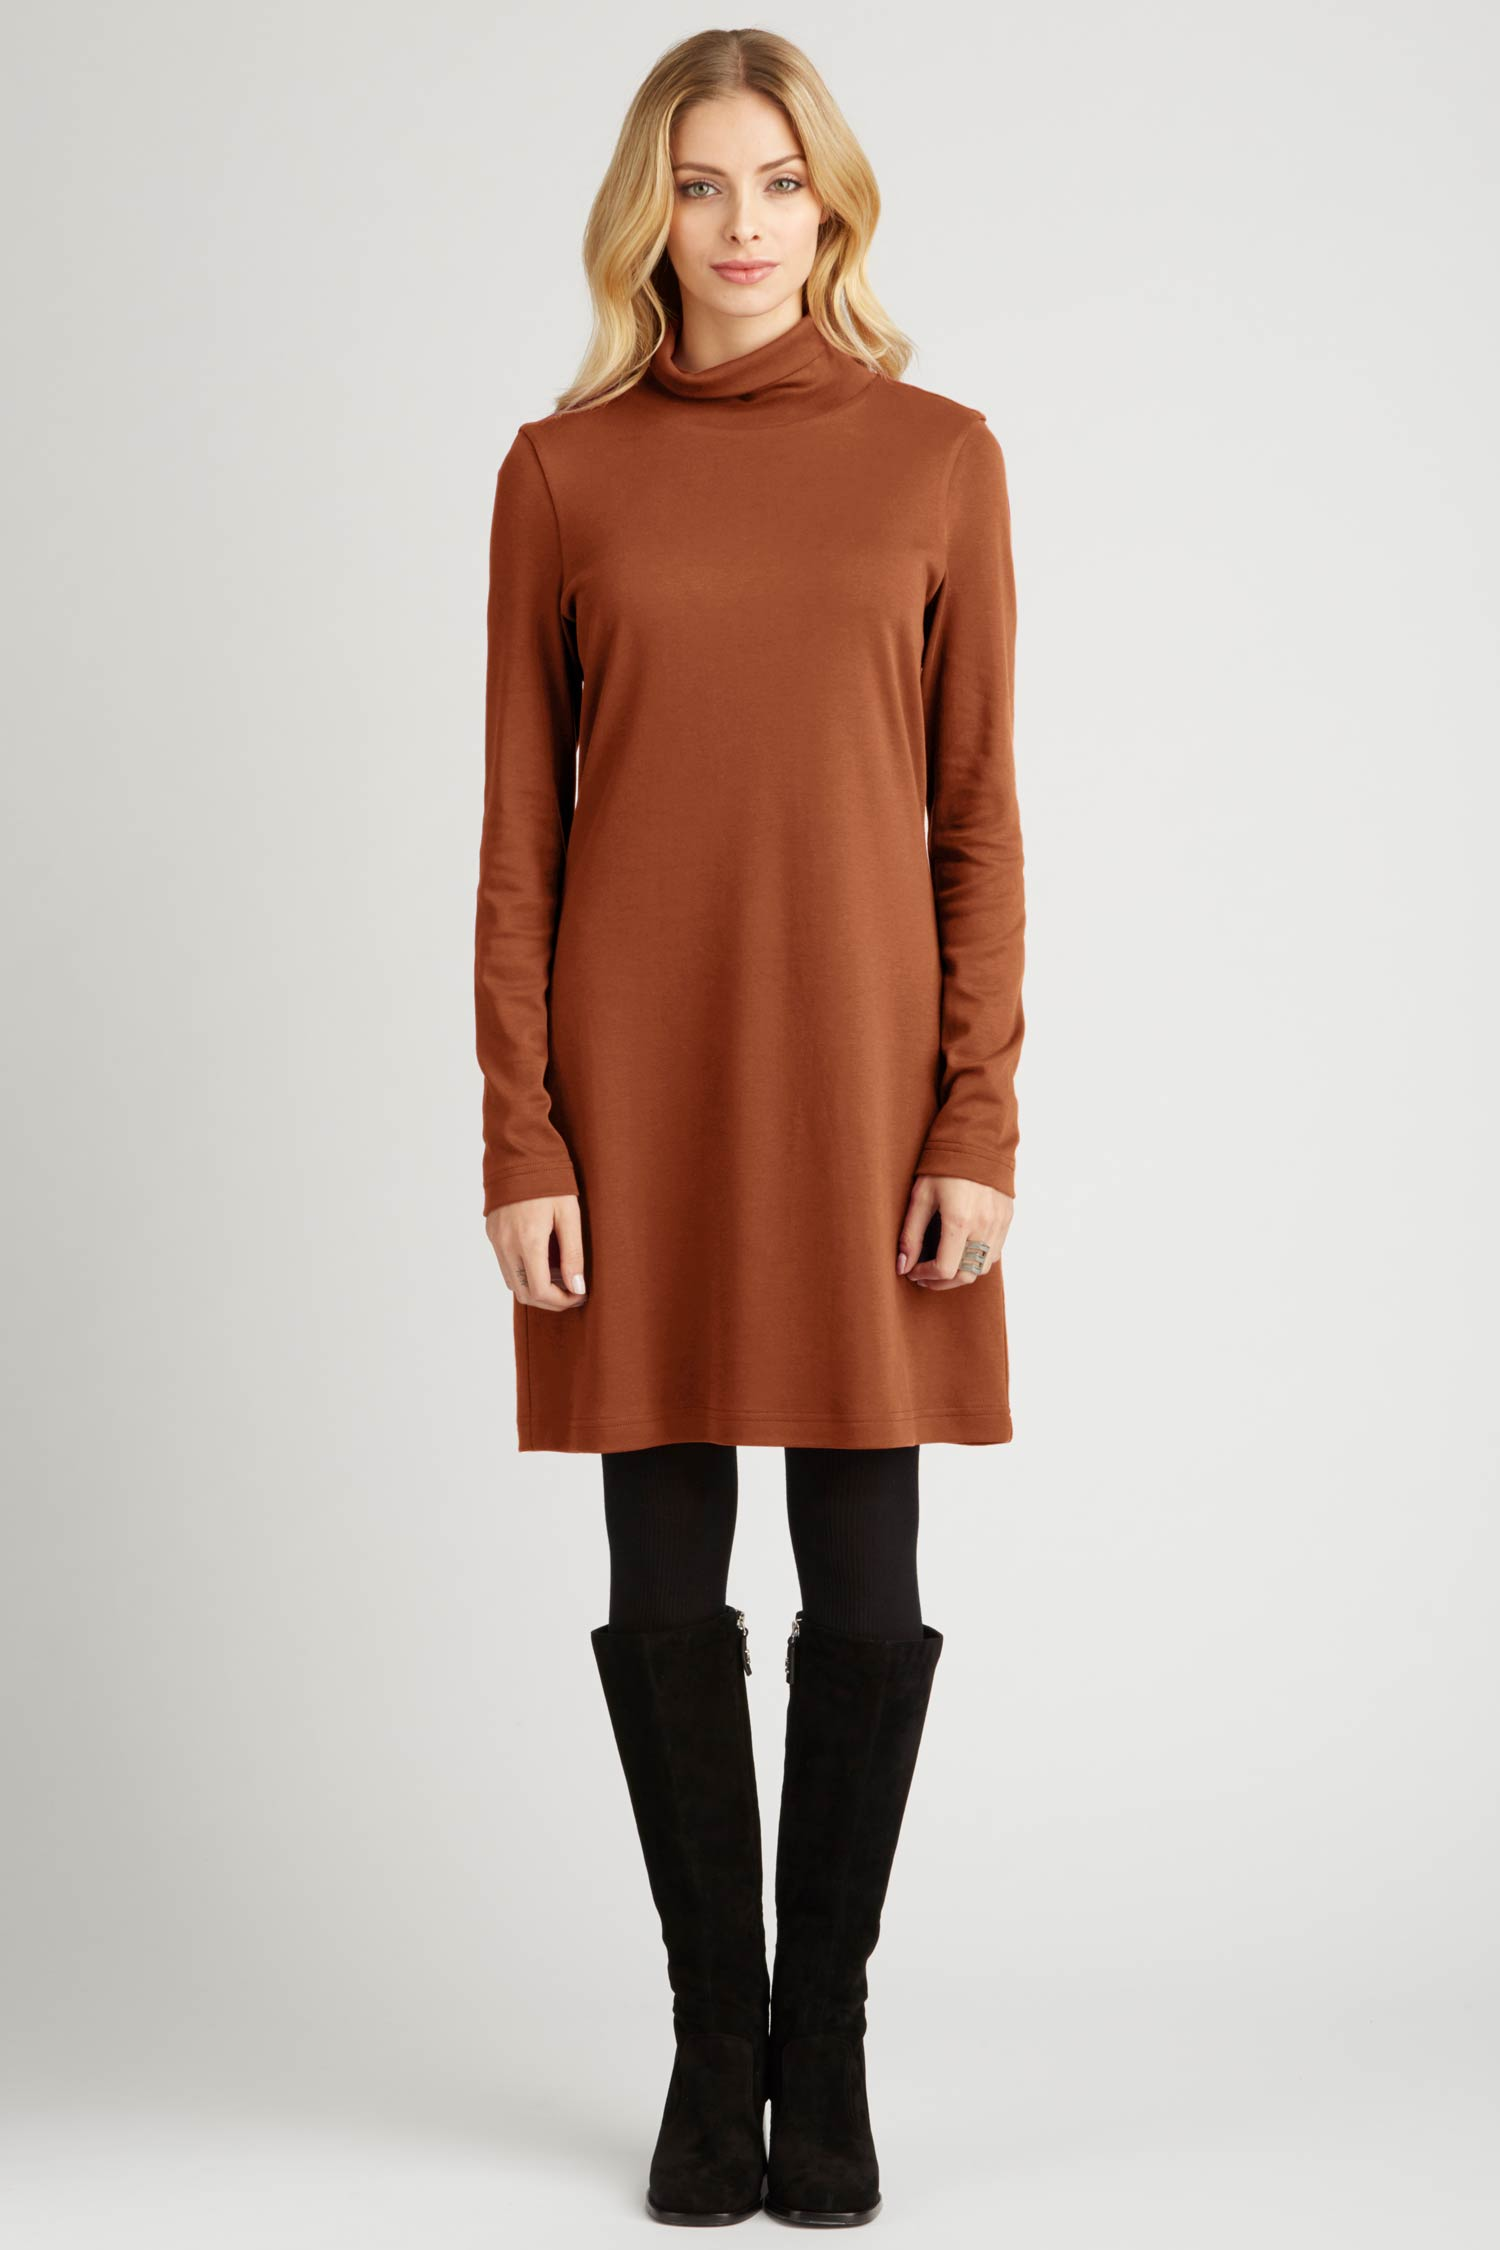 Womens Turtleneck Dress in Brown | Ethical Fashion